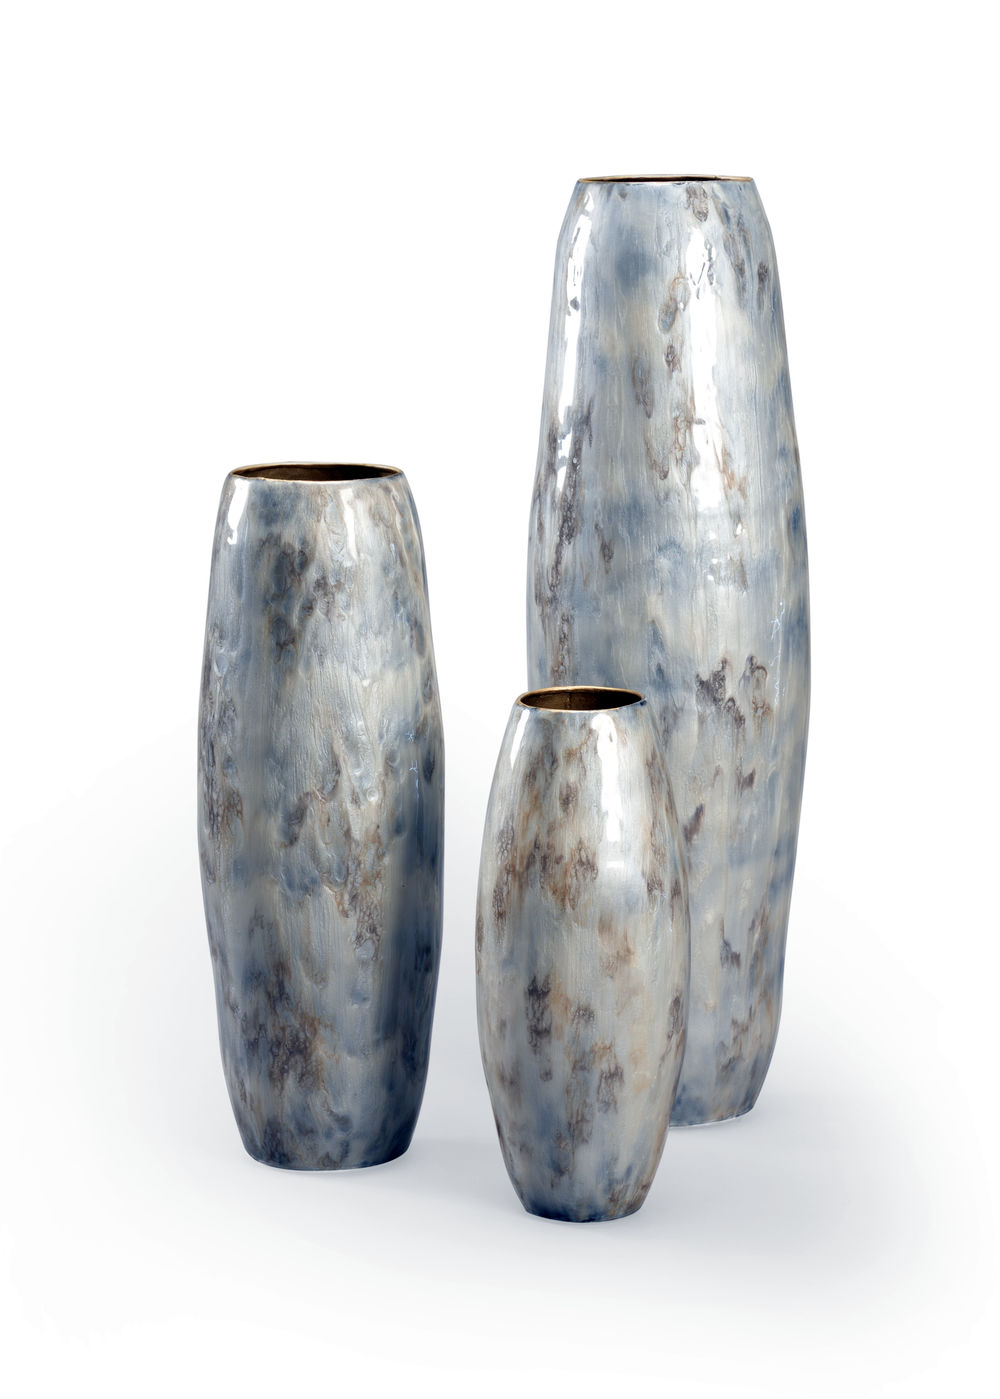 301507 Wildwood Glass Distressed Gray Holt Vases (S3)